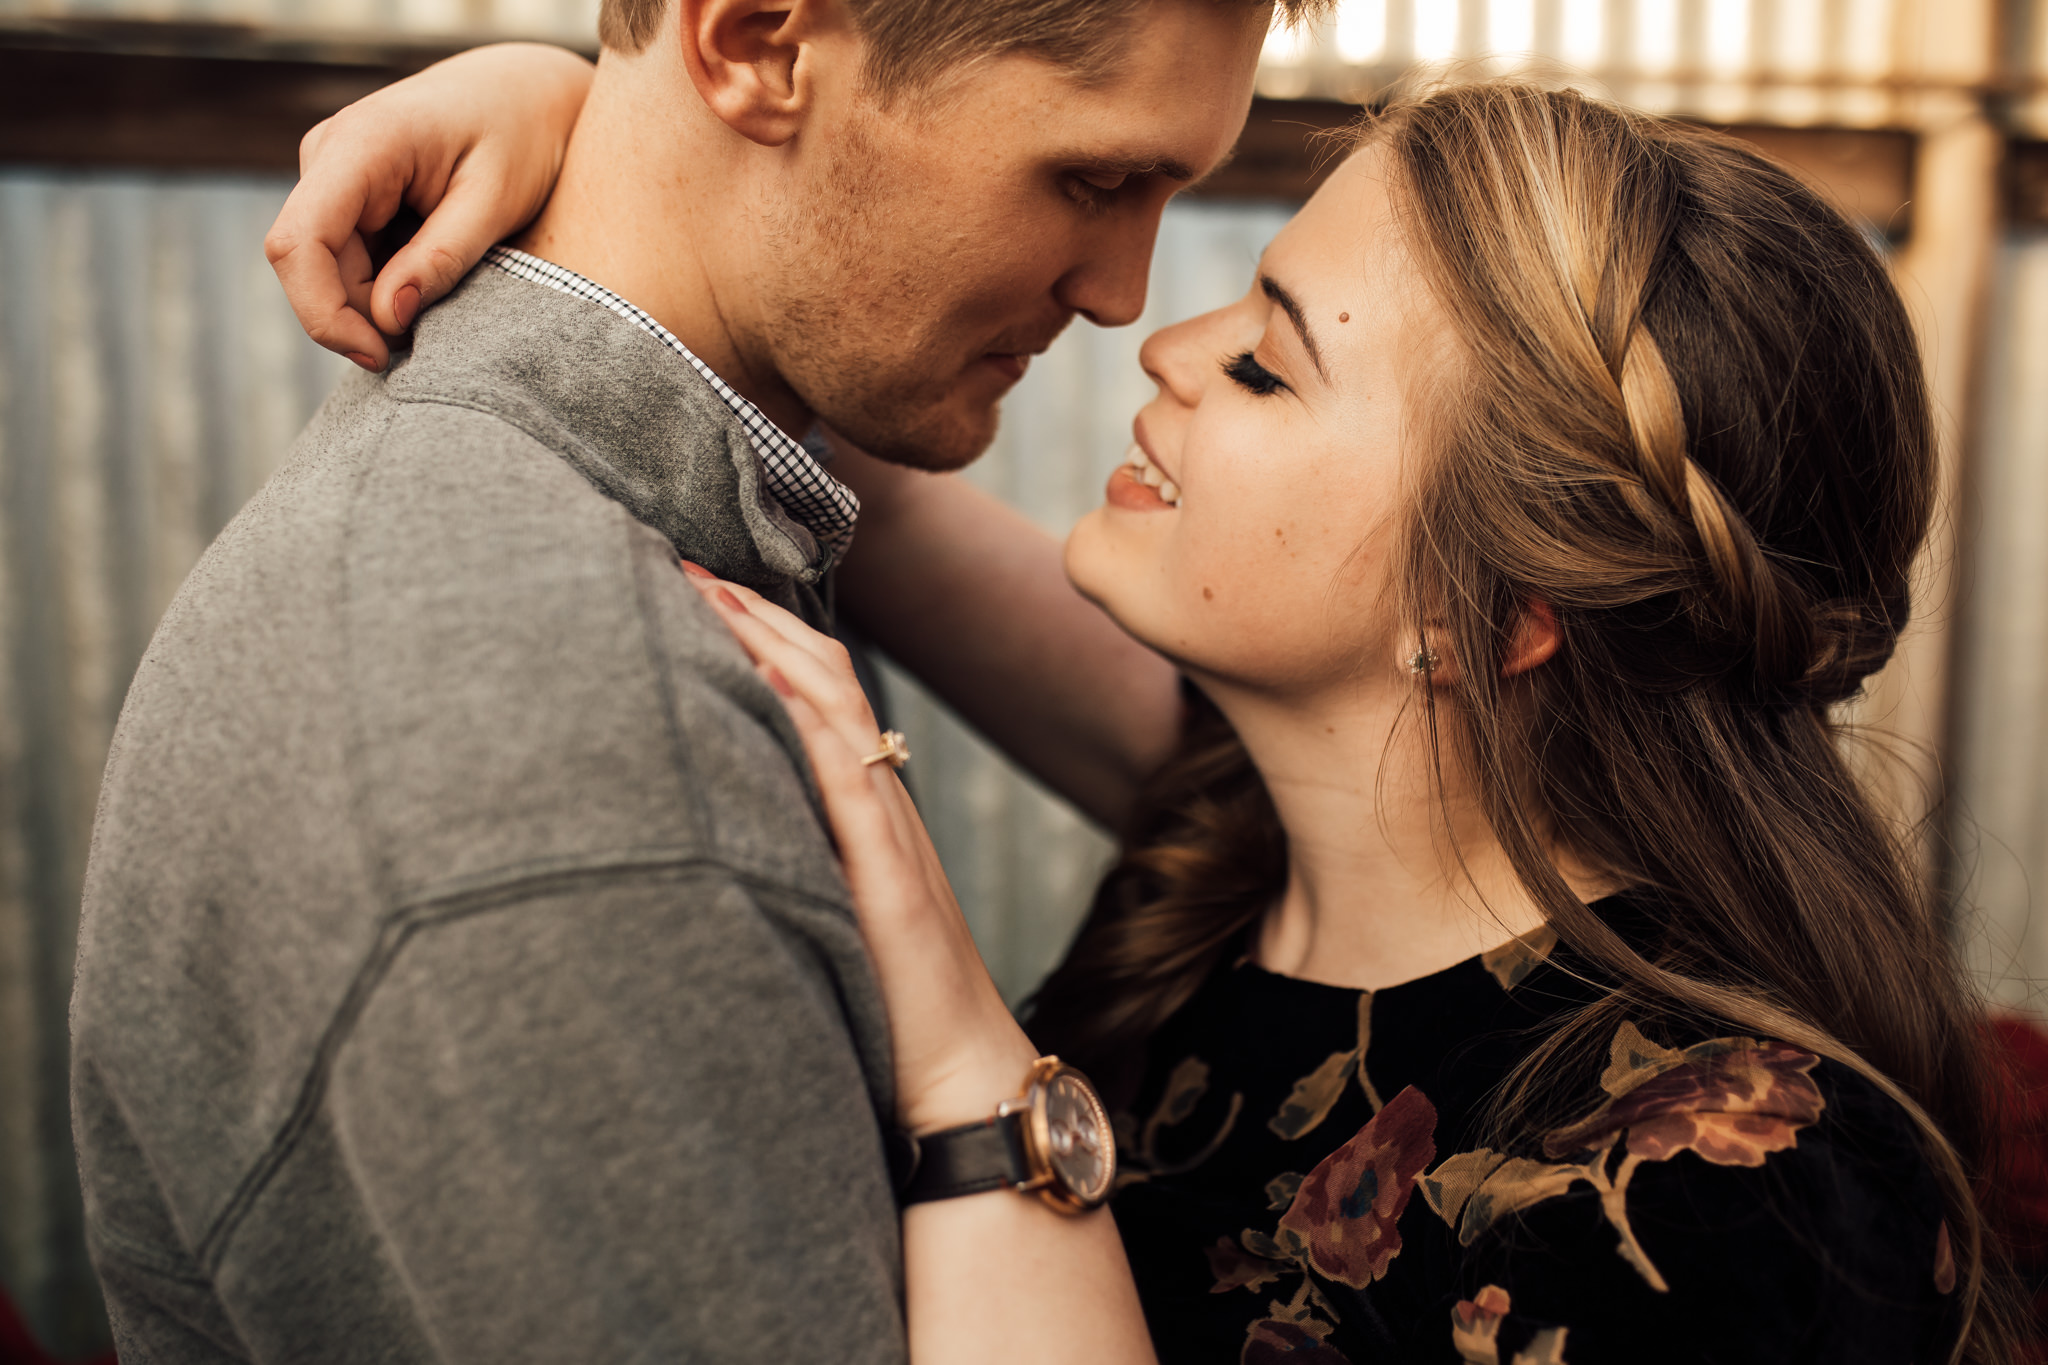 memphis-wedding-photographer-greenhouse-engagement-pictures-cassie-cook-photography-34.jpg